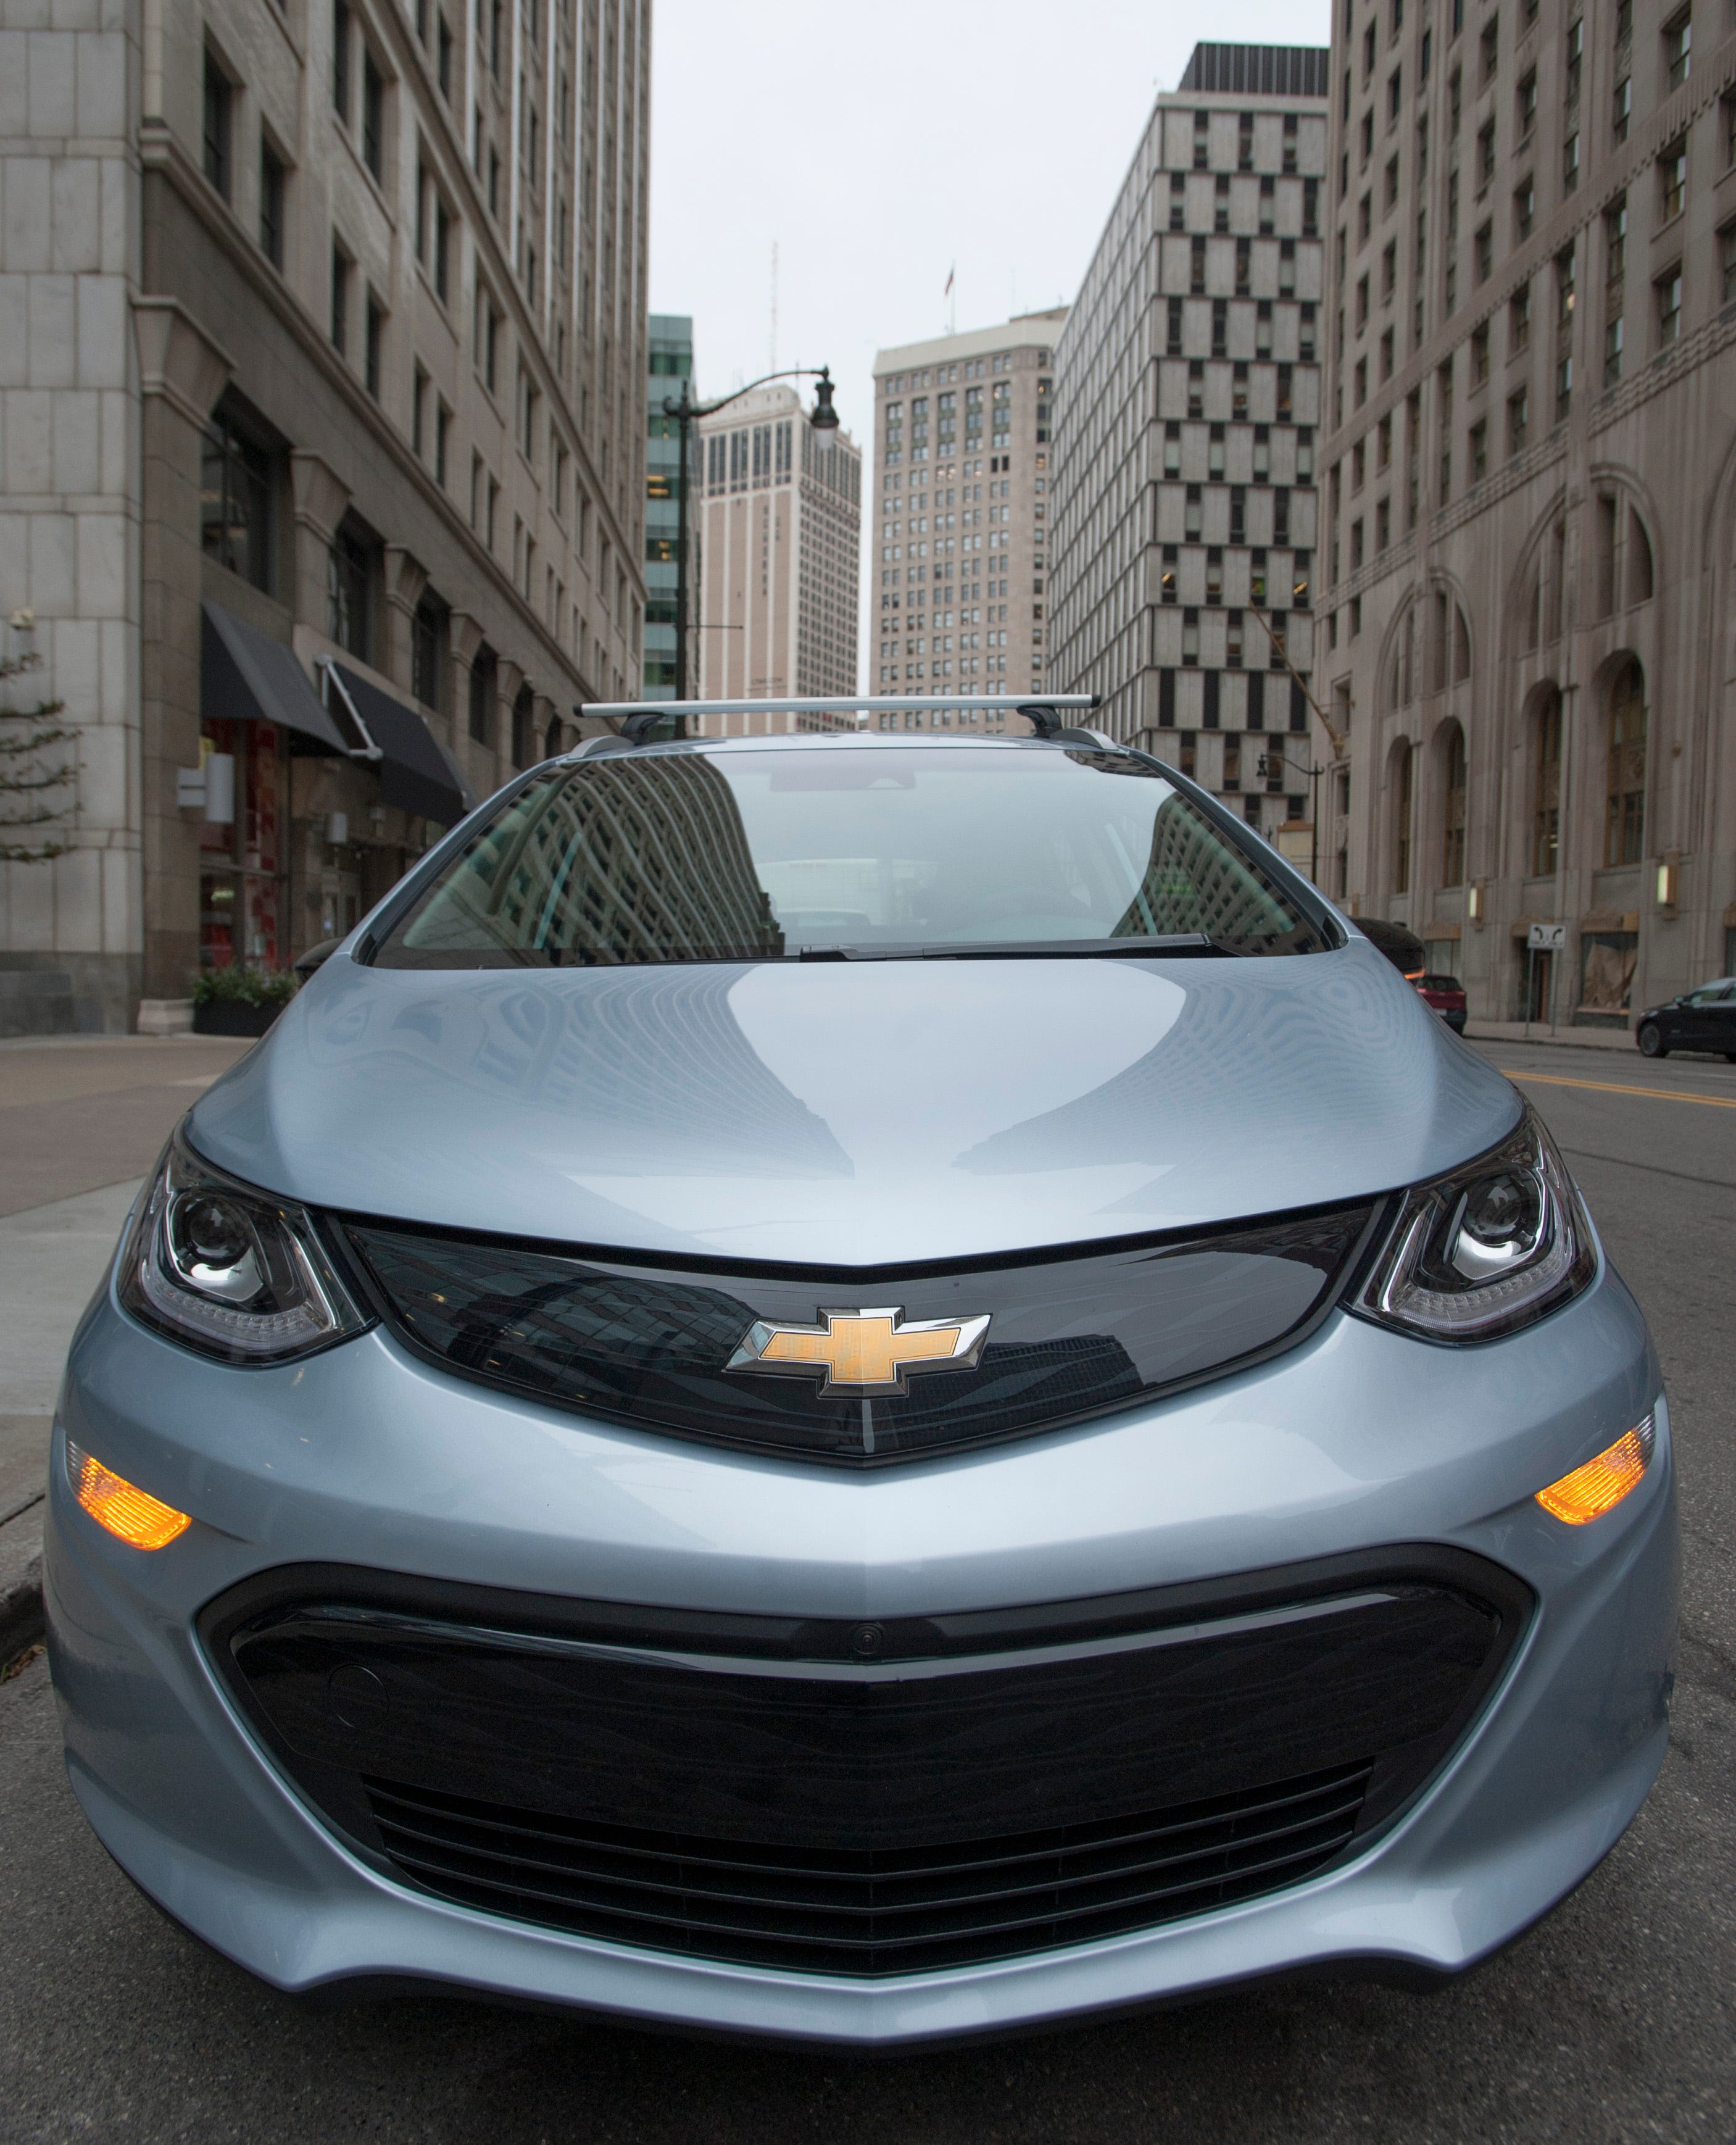 Us Investigates Fire Reports In Chevy Bolt Electric Vehicles